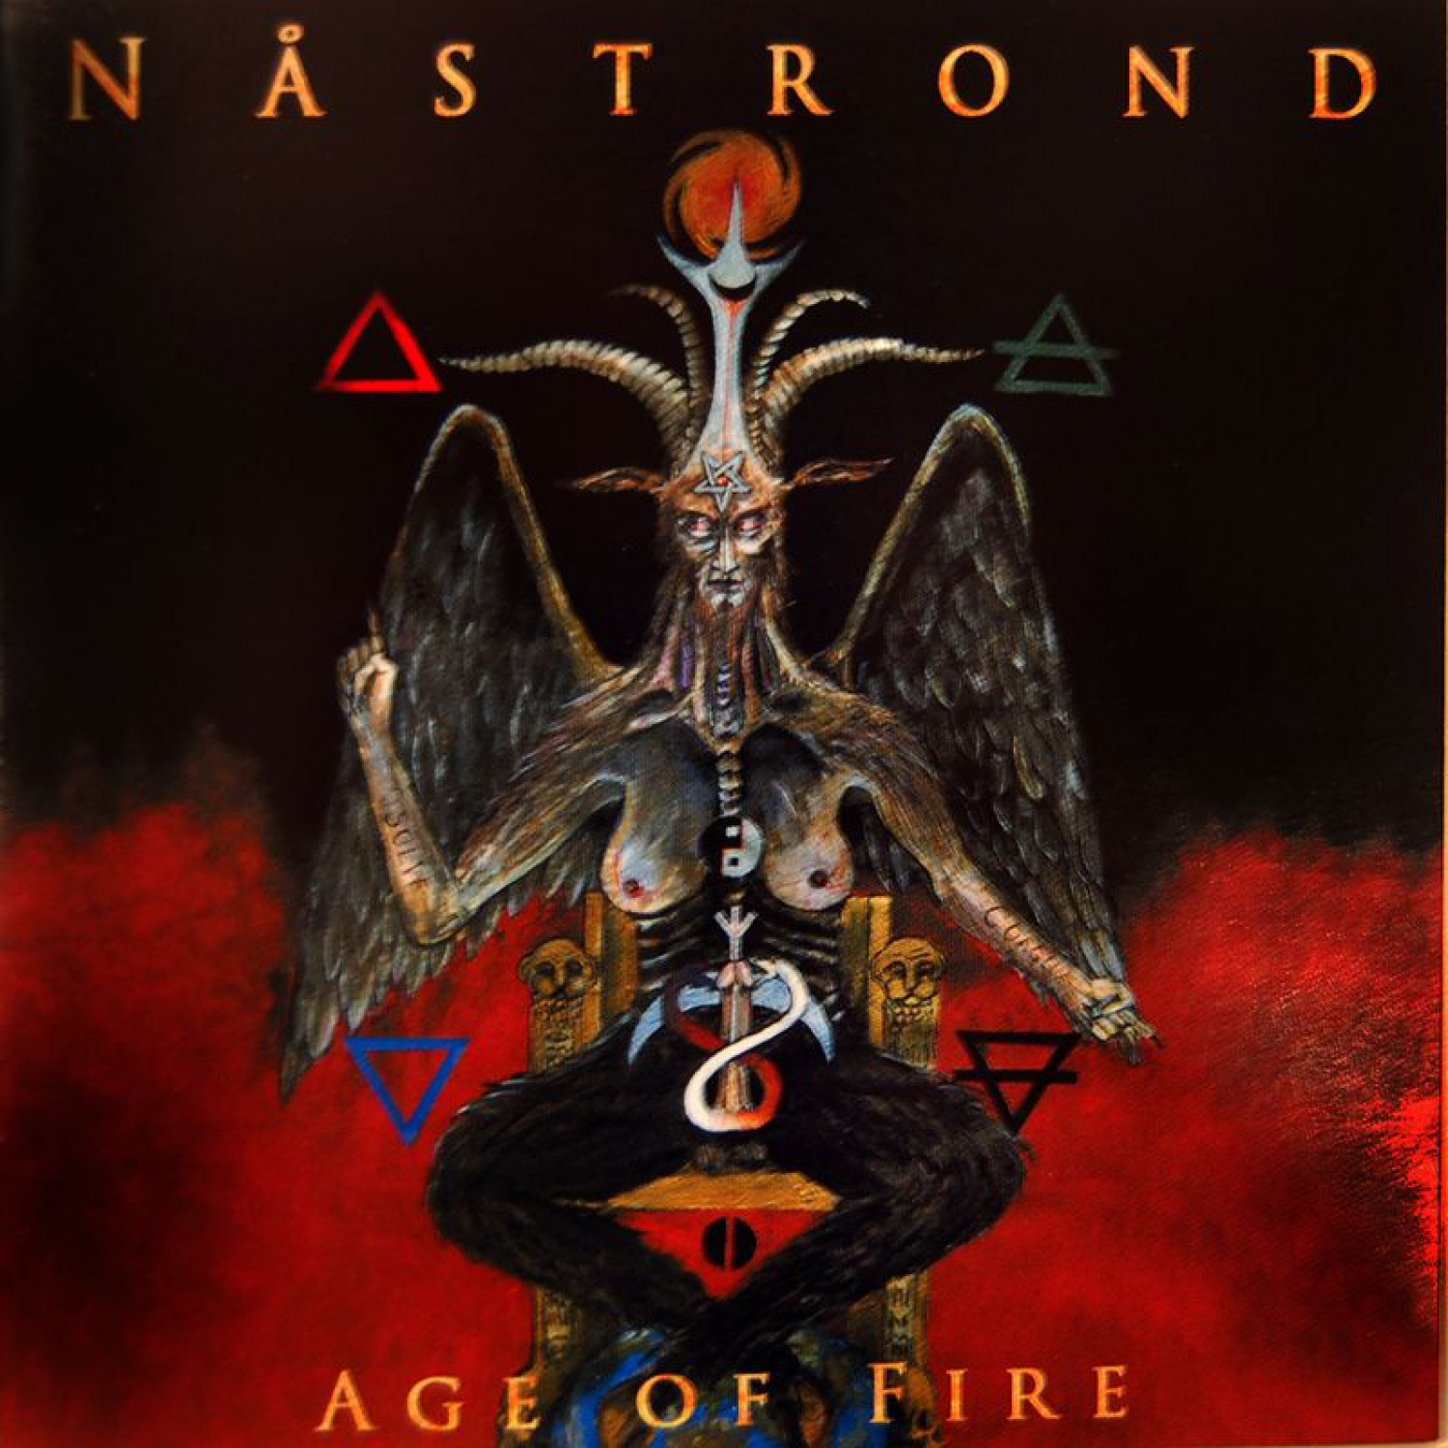 Nåstrond - Age of Fire (2011) [FLAC] Download